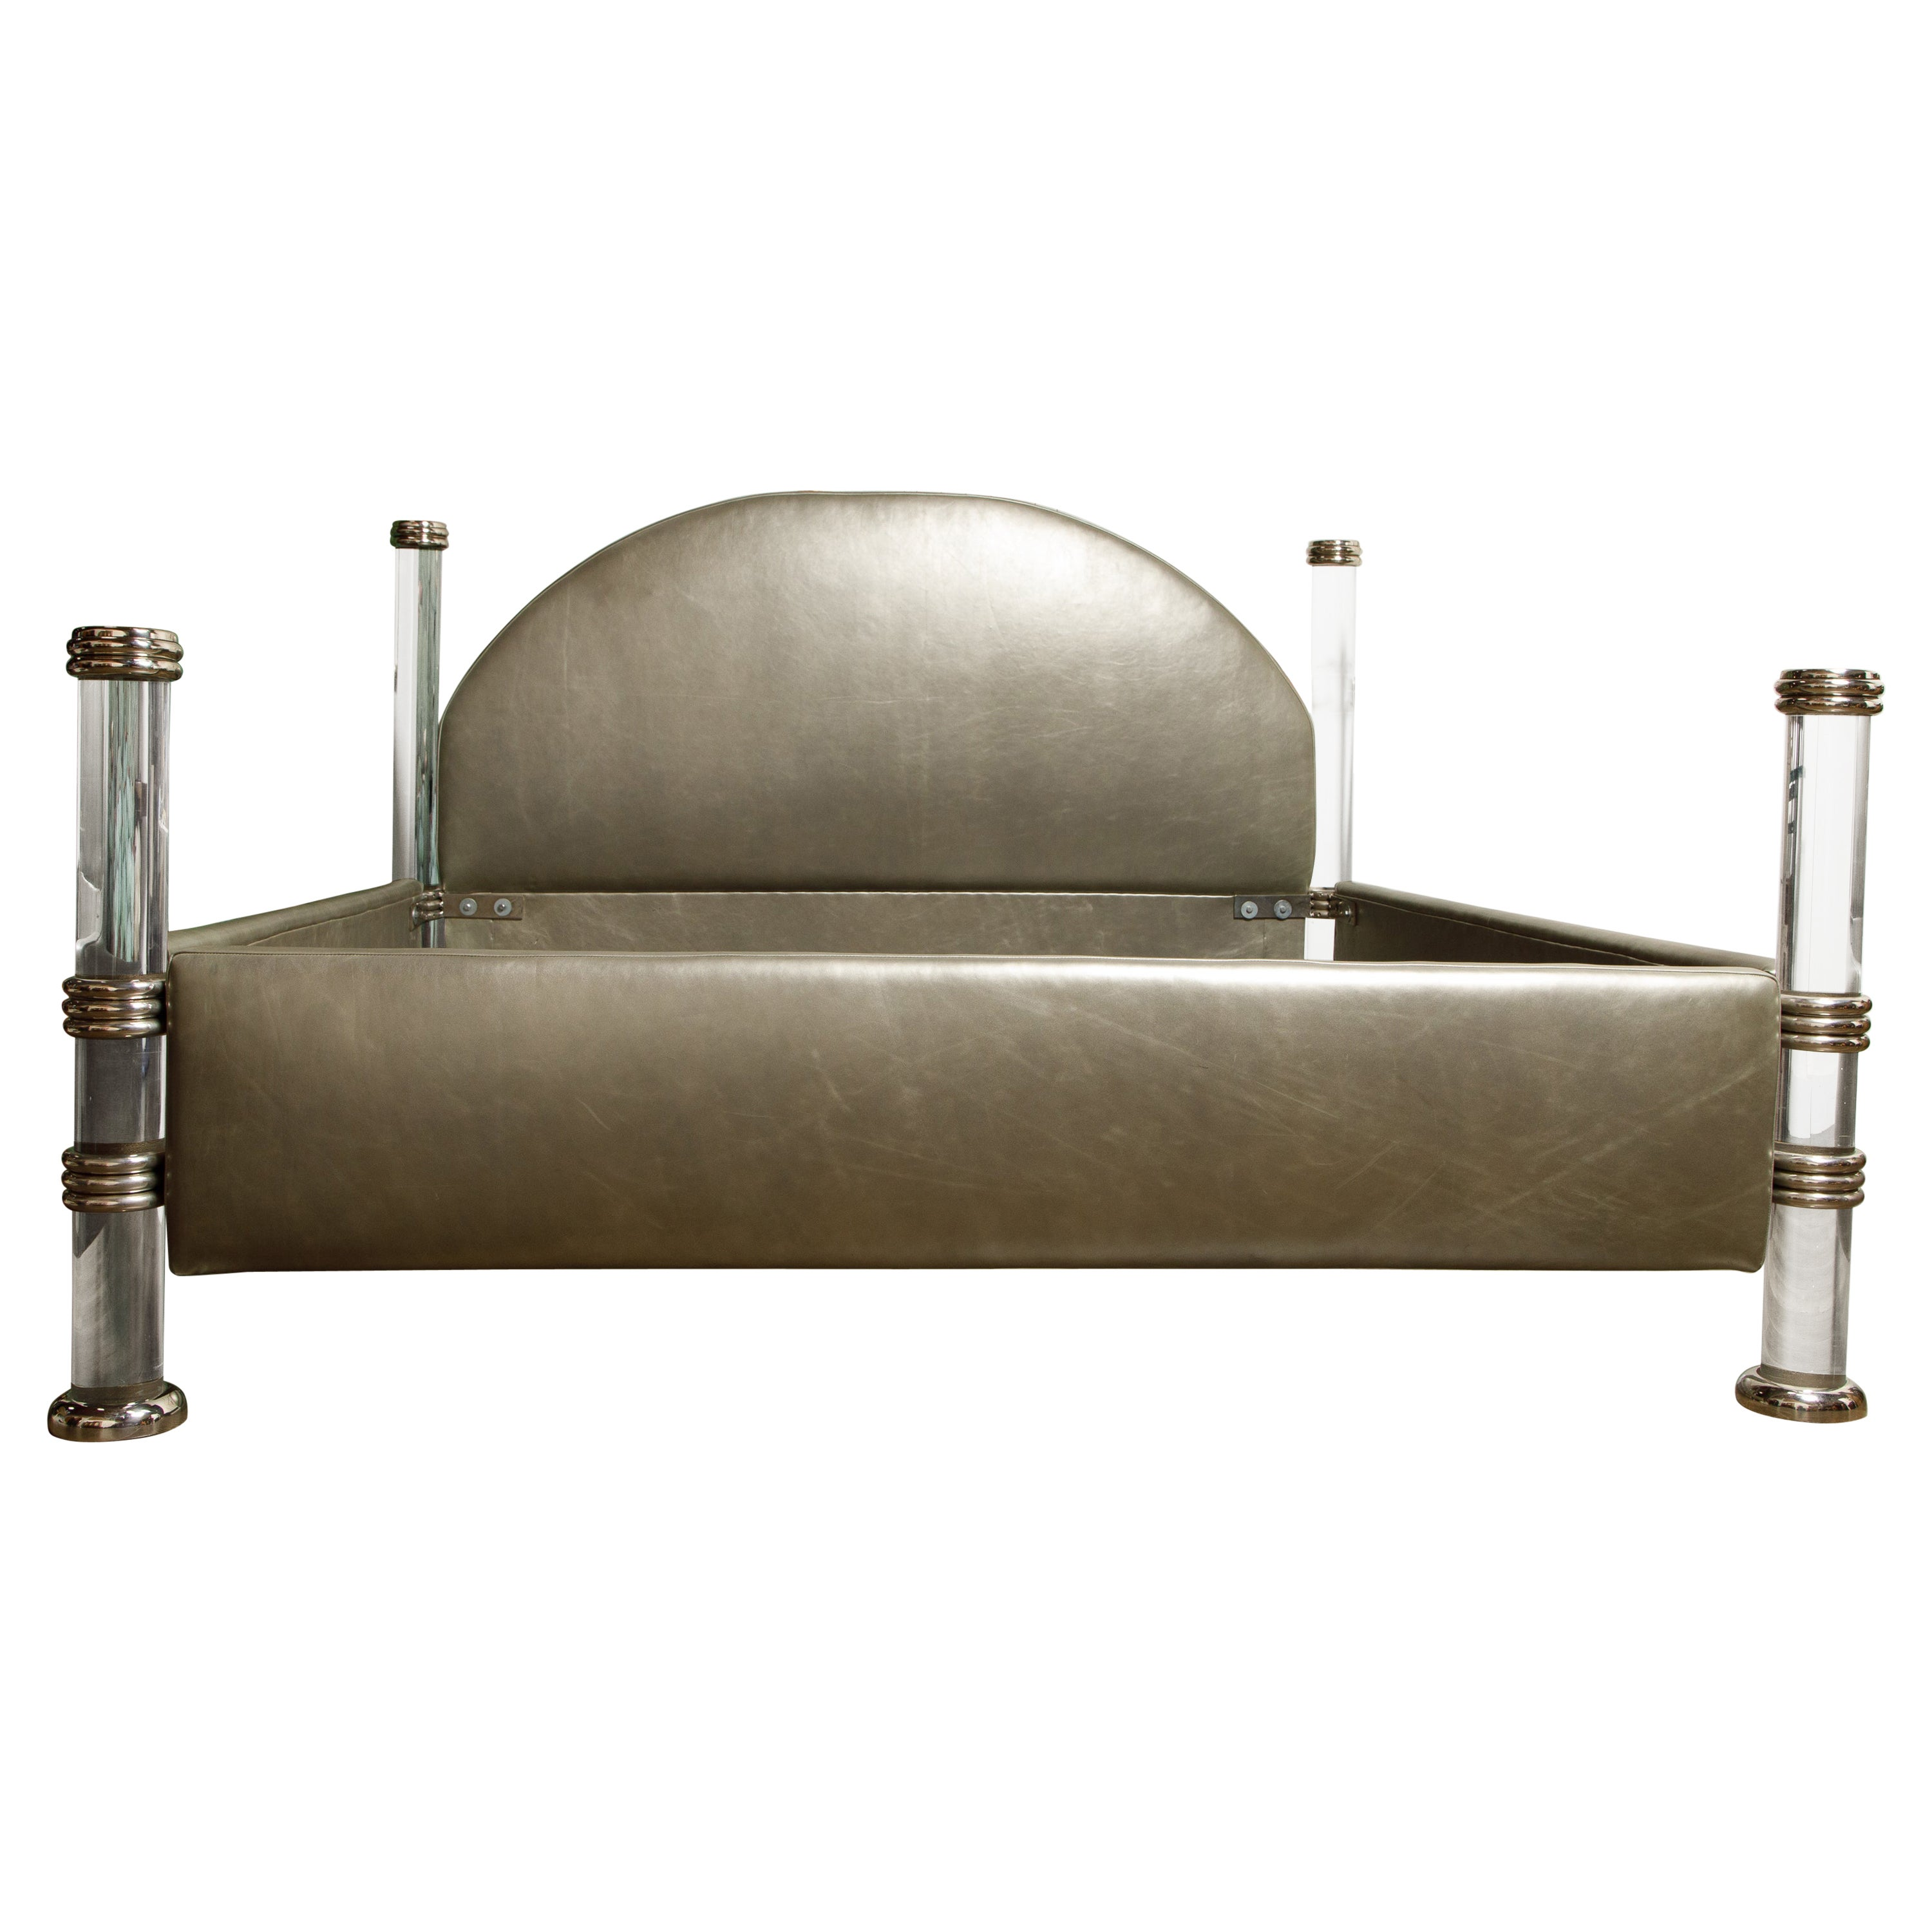 Marcello Mioni Hollywood Regency Leather and Lucite King Size Bed, Italy c 1970s